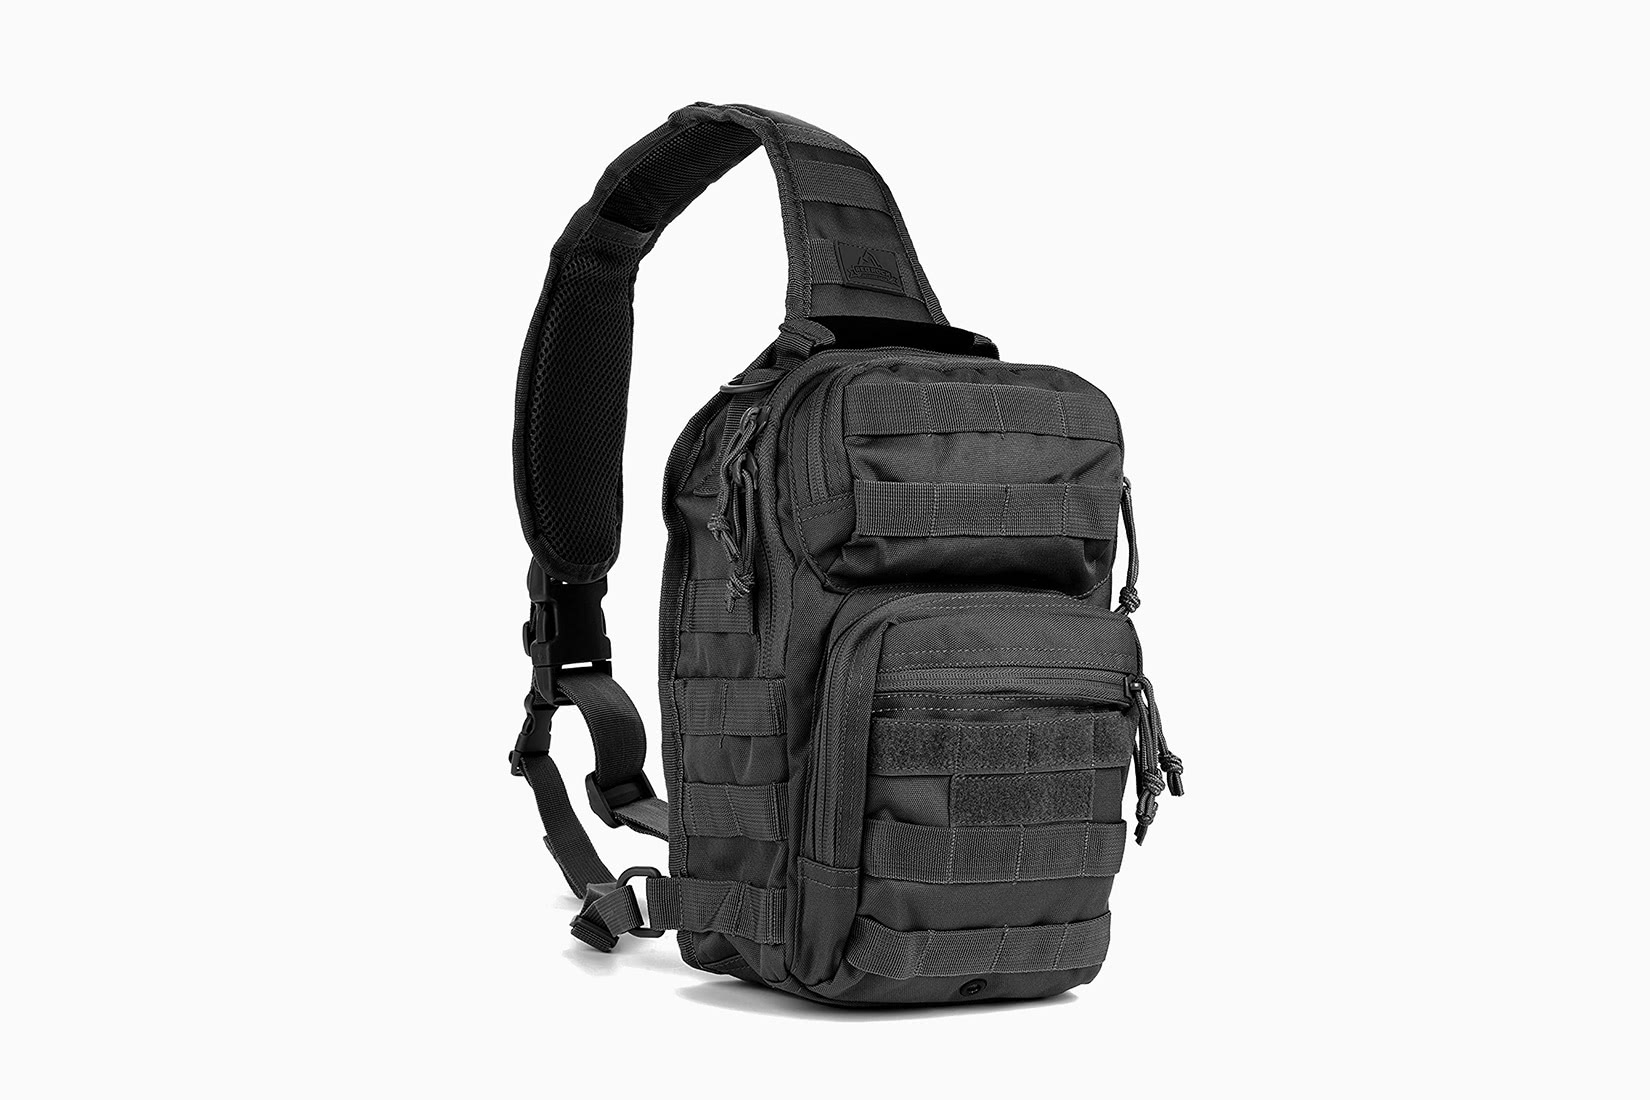 best tactical backpack red rock - Luxe Digital